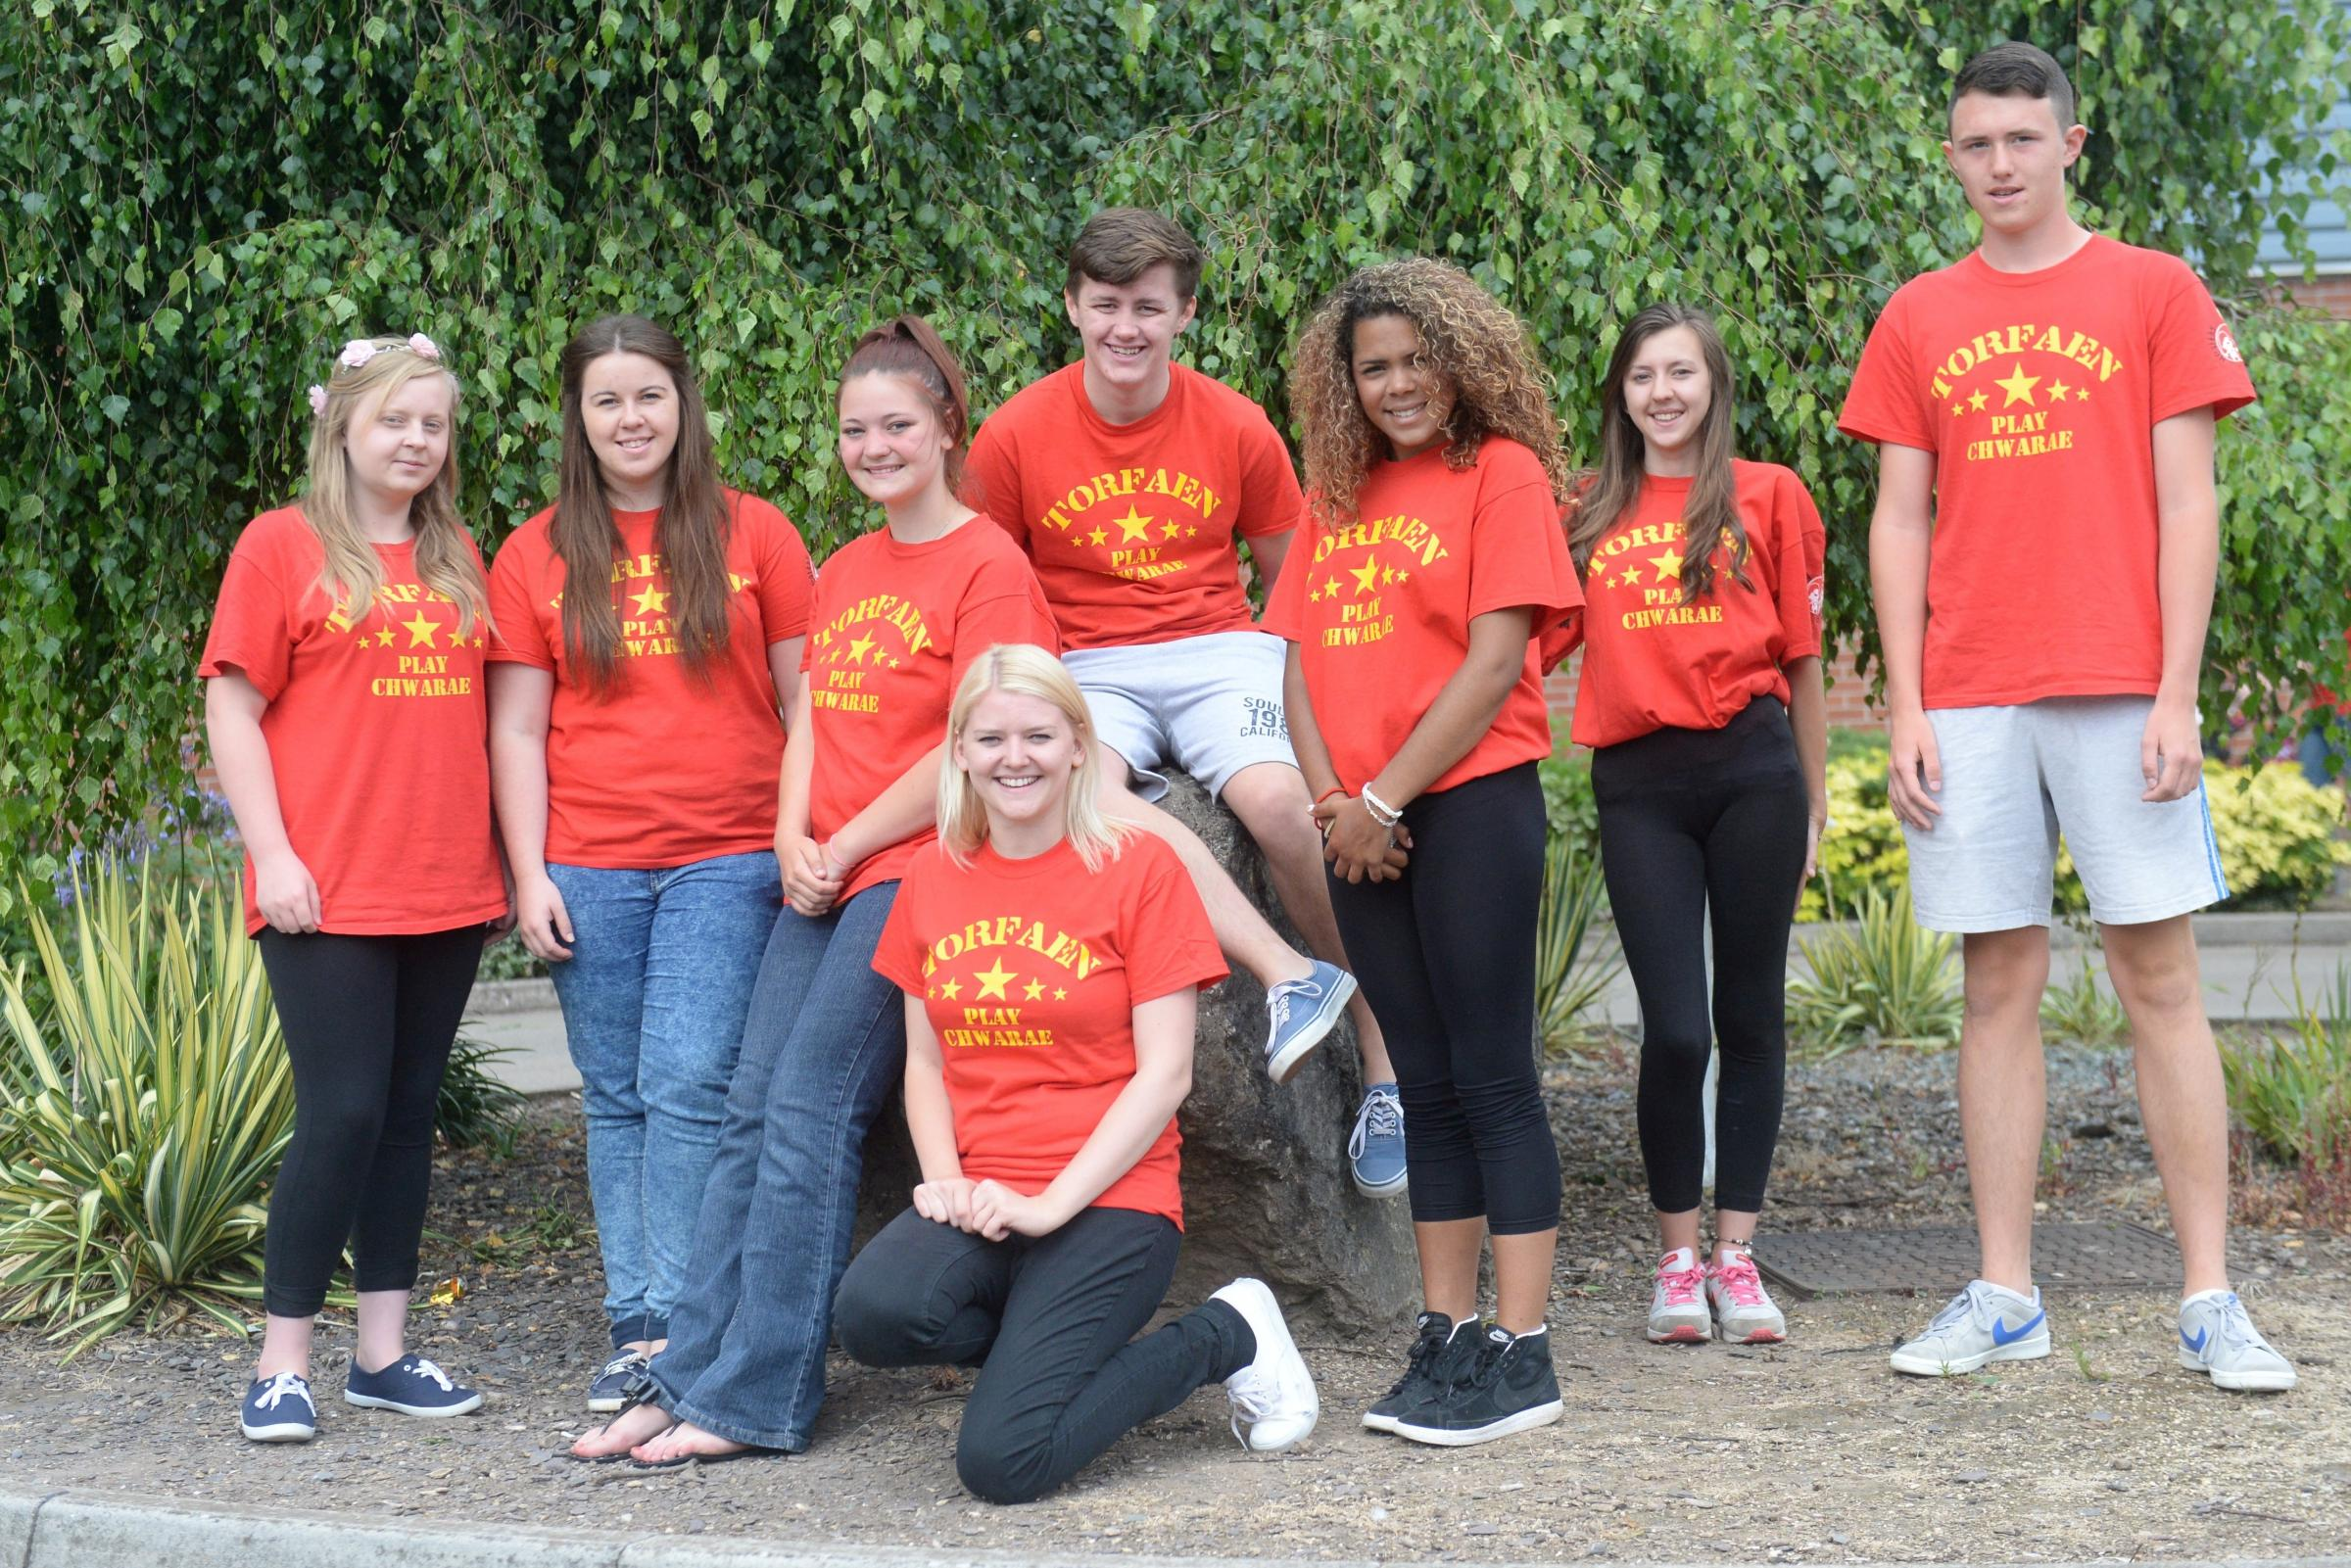 WORK EXPERIENCE: Summer playscheme volunteer